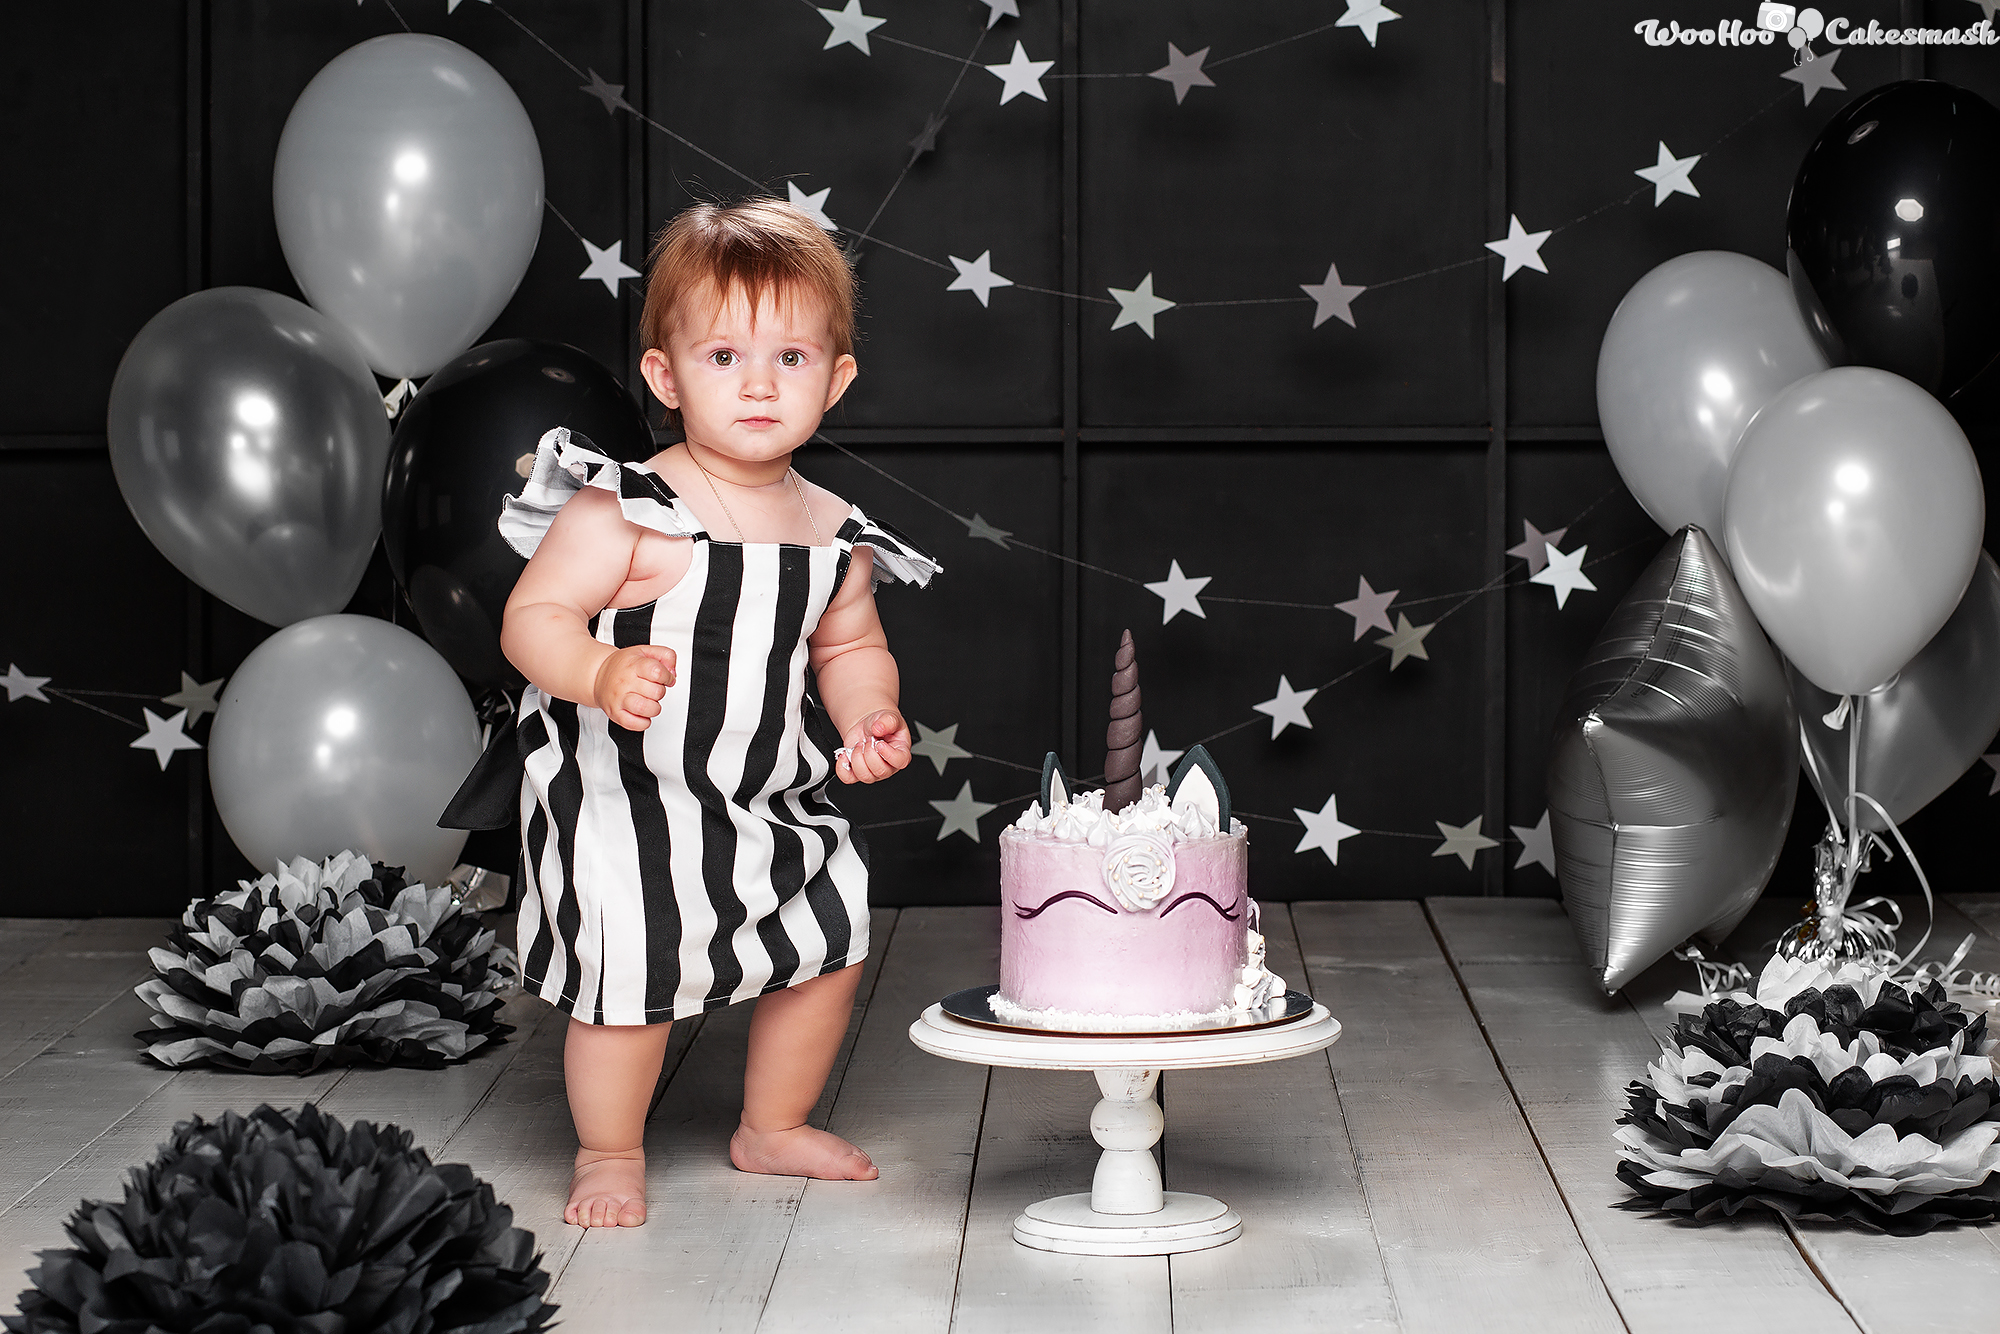 woohoo_cakesmash_Eva_black_and_white_2